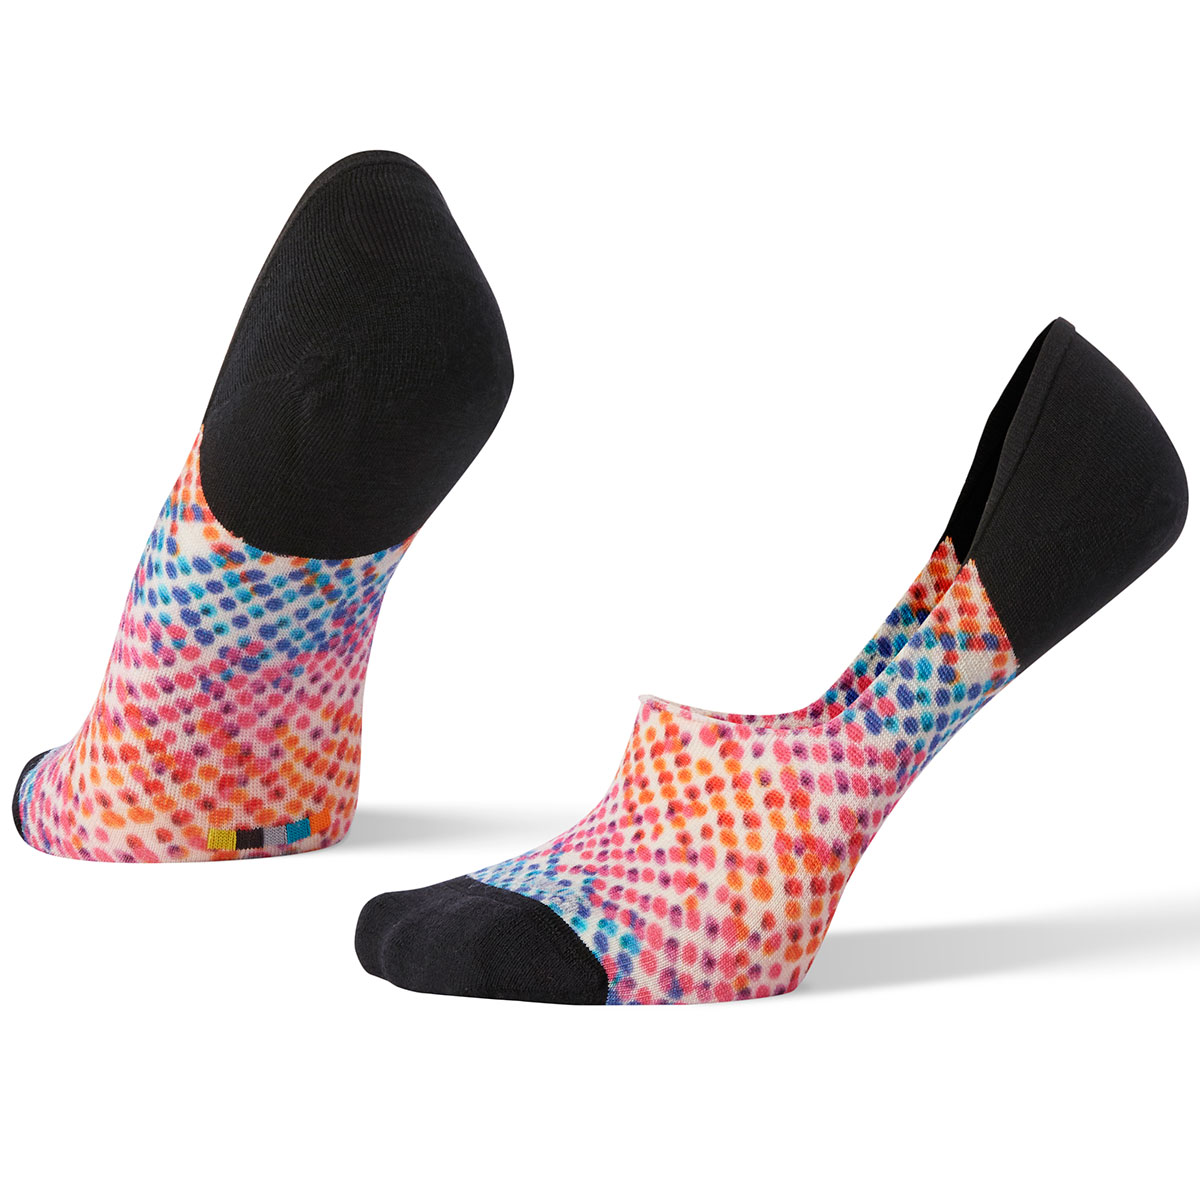 Smartwool Women's Curated Firecracker No-Show Socks - White, M